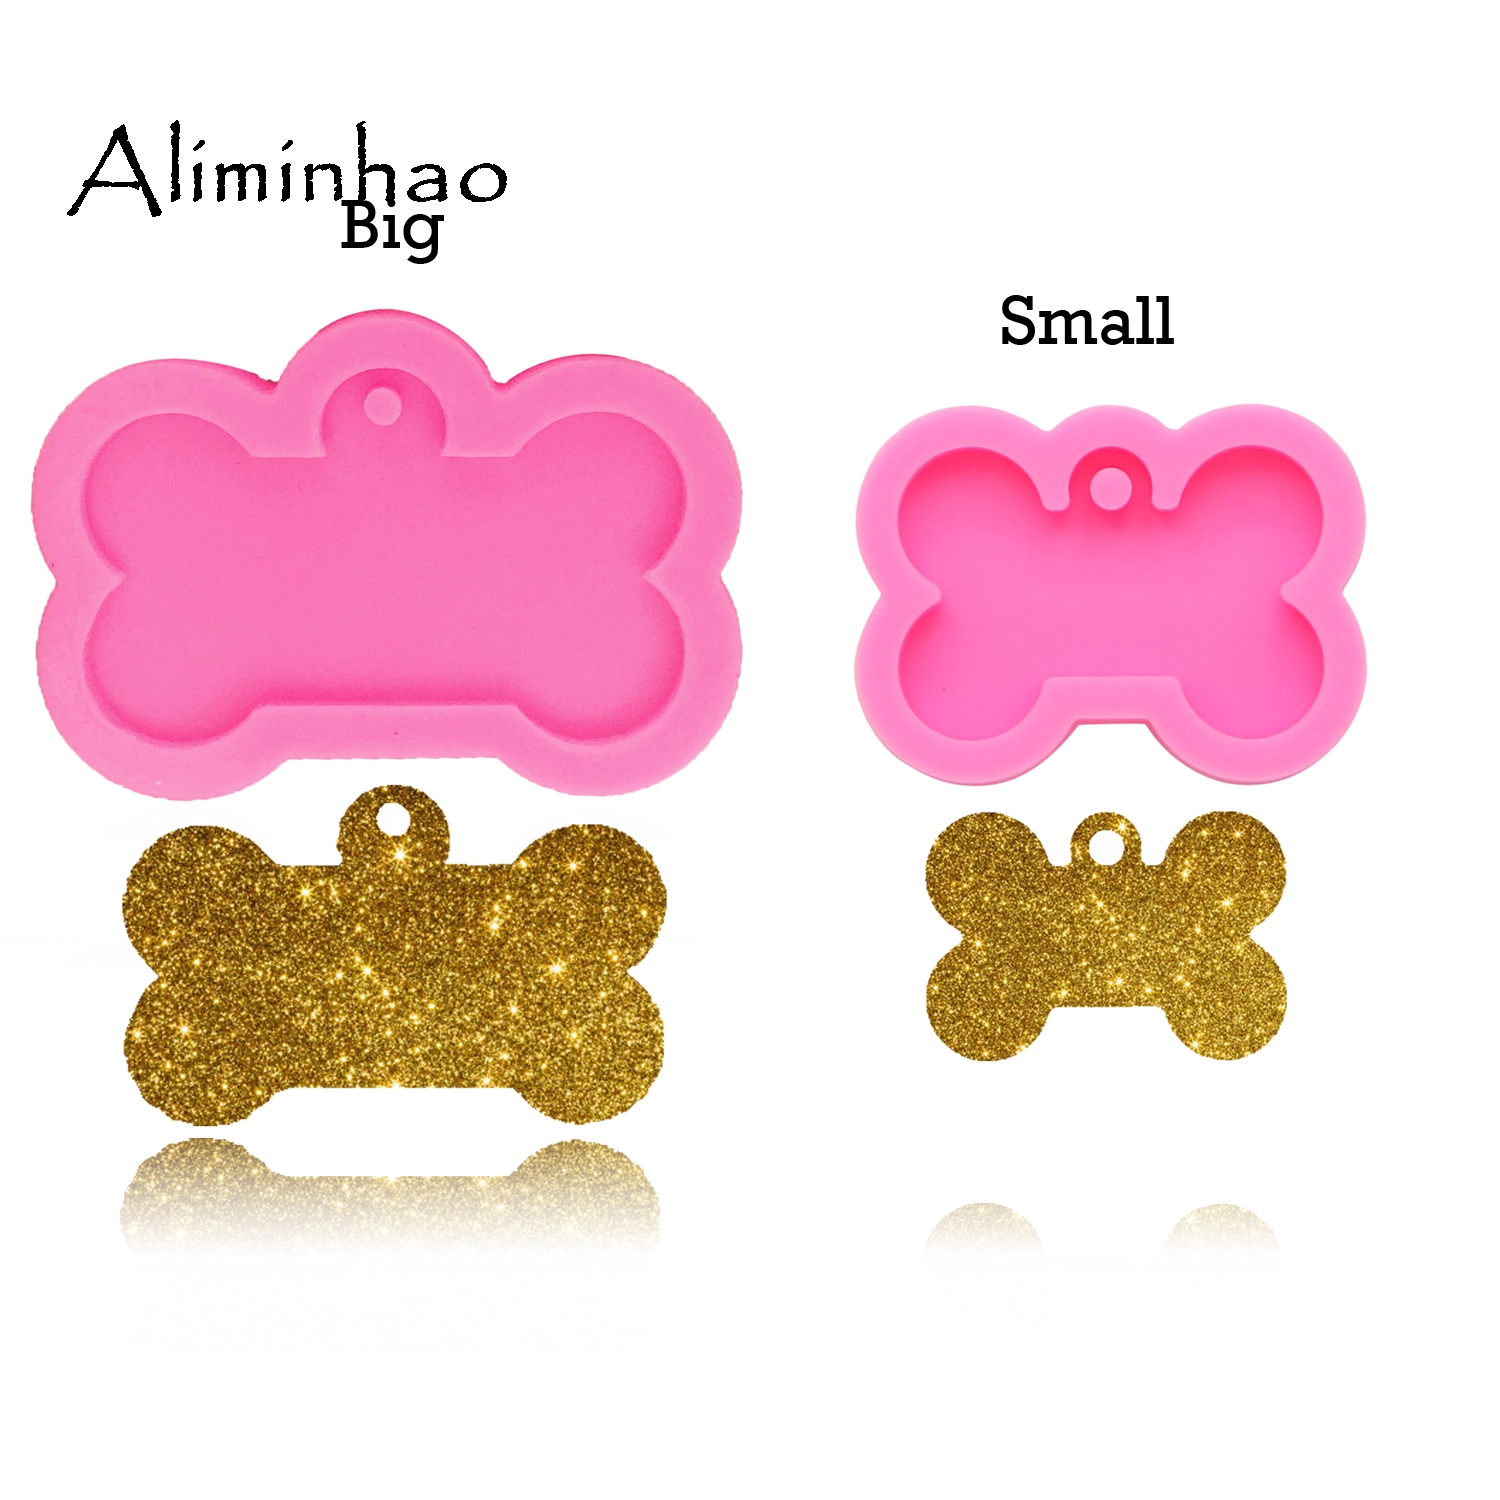 DY0061 shiny Dog bone shape silicone mold for key chain Pendant moulds suitable for  clay DIY Jewelry Making epoxy Resin mold